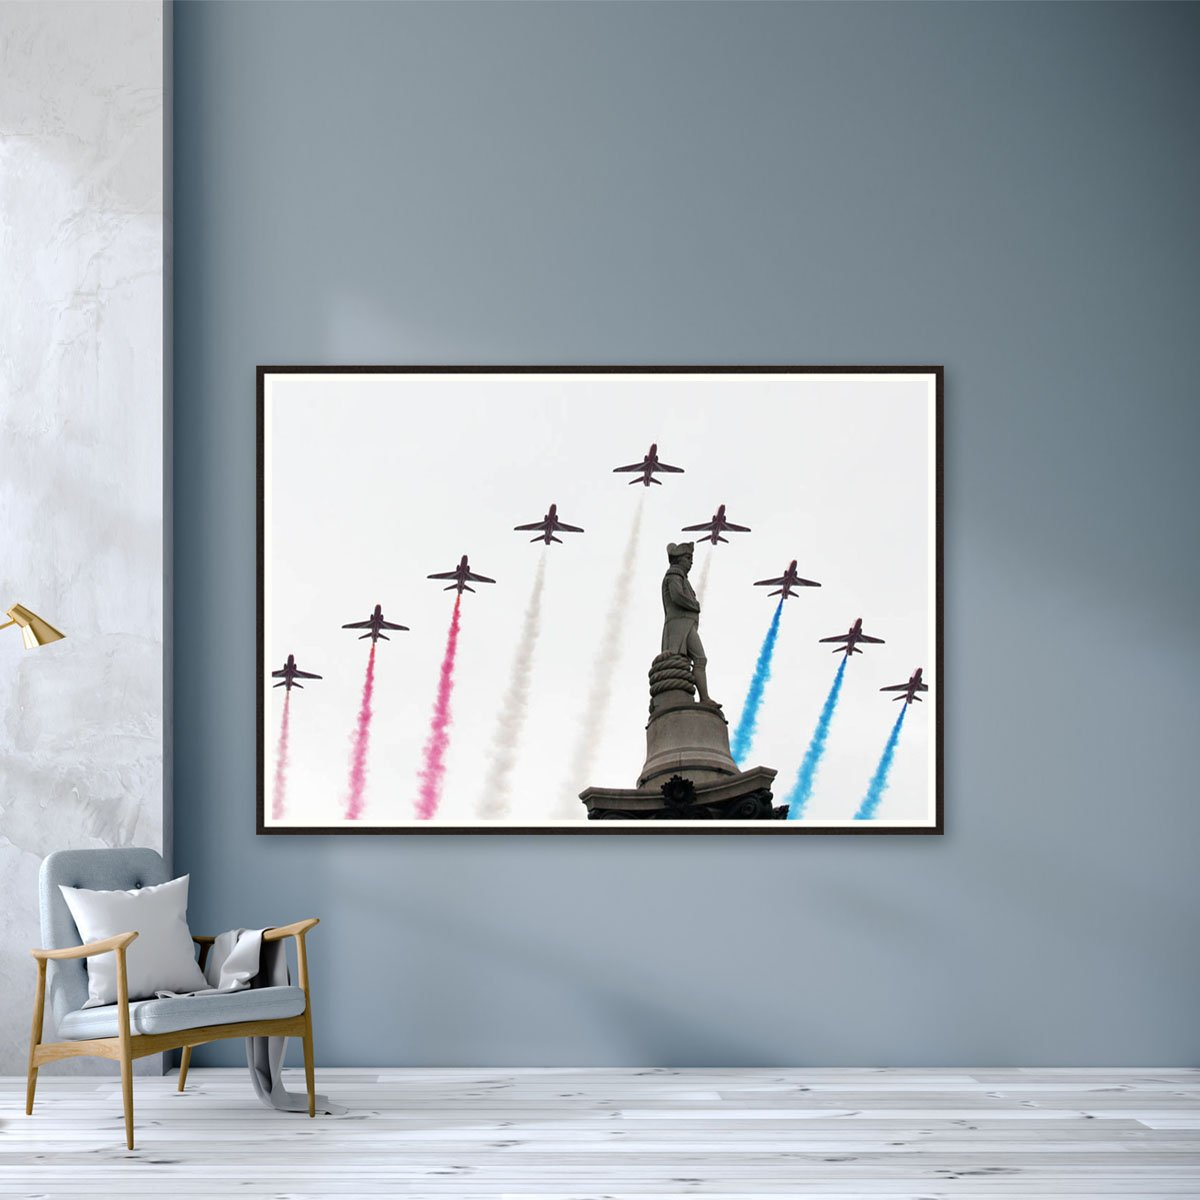 Red Arrows over Nelson's Column by Roger Jackson